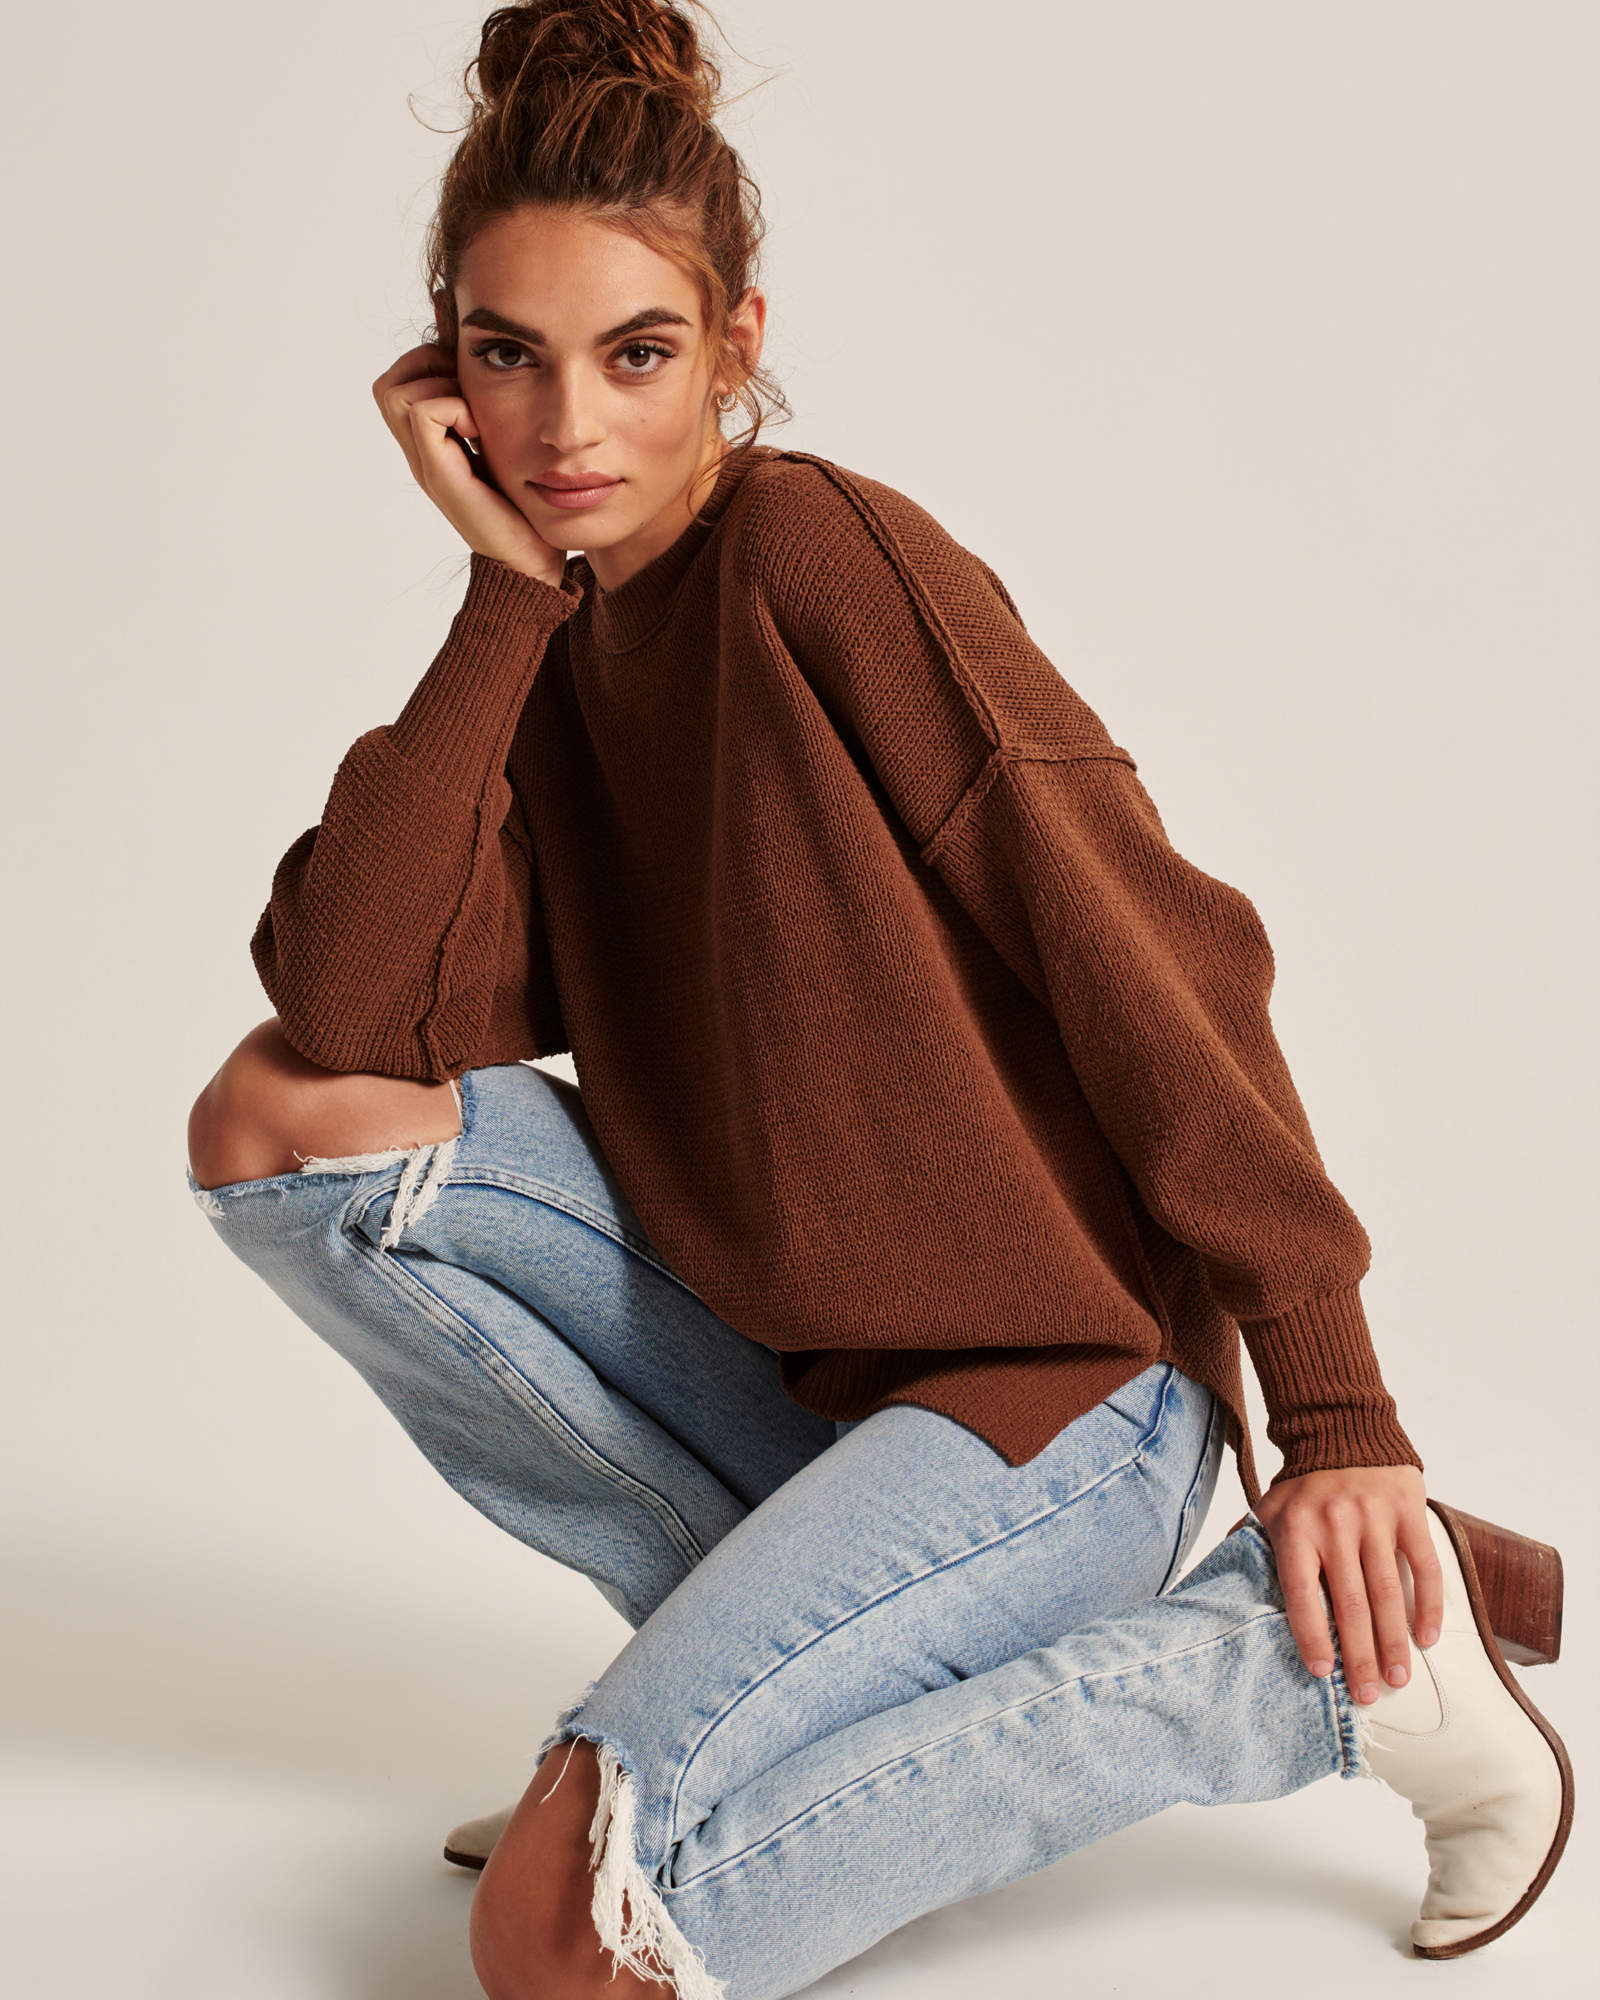 Abercrombie Oversized Chenille Sweater Weekly Finds + The Prettiest Way to Dress Up Your Holiday Looks for Under $8